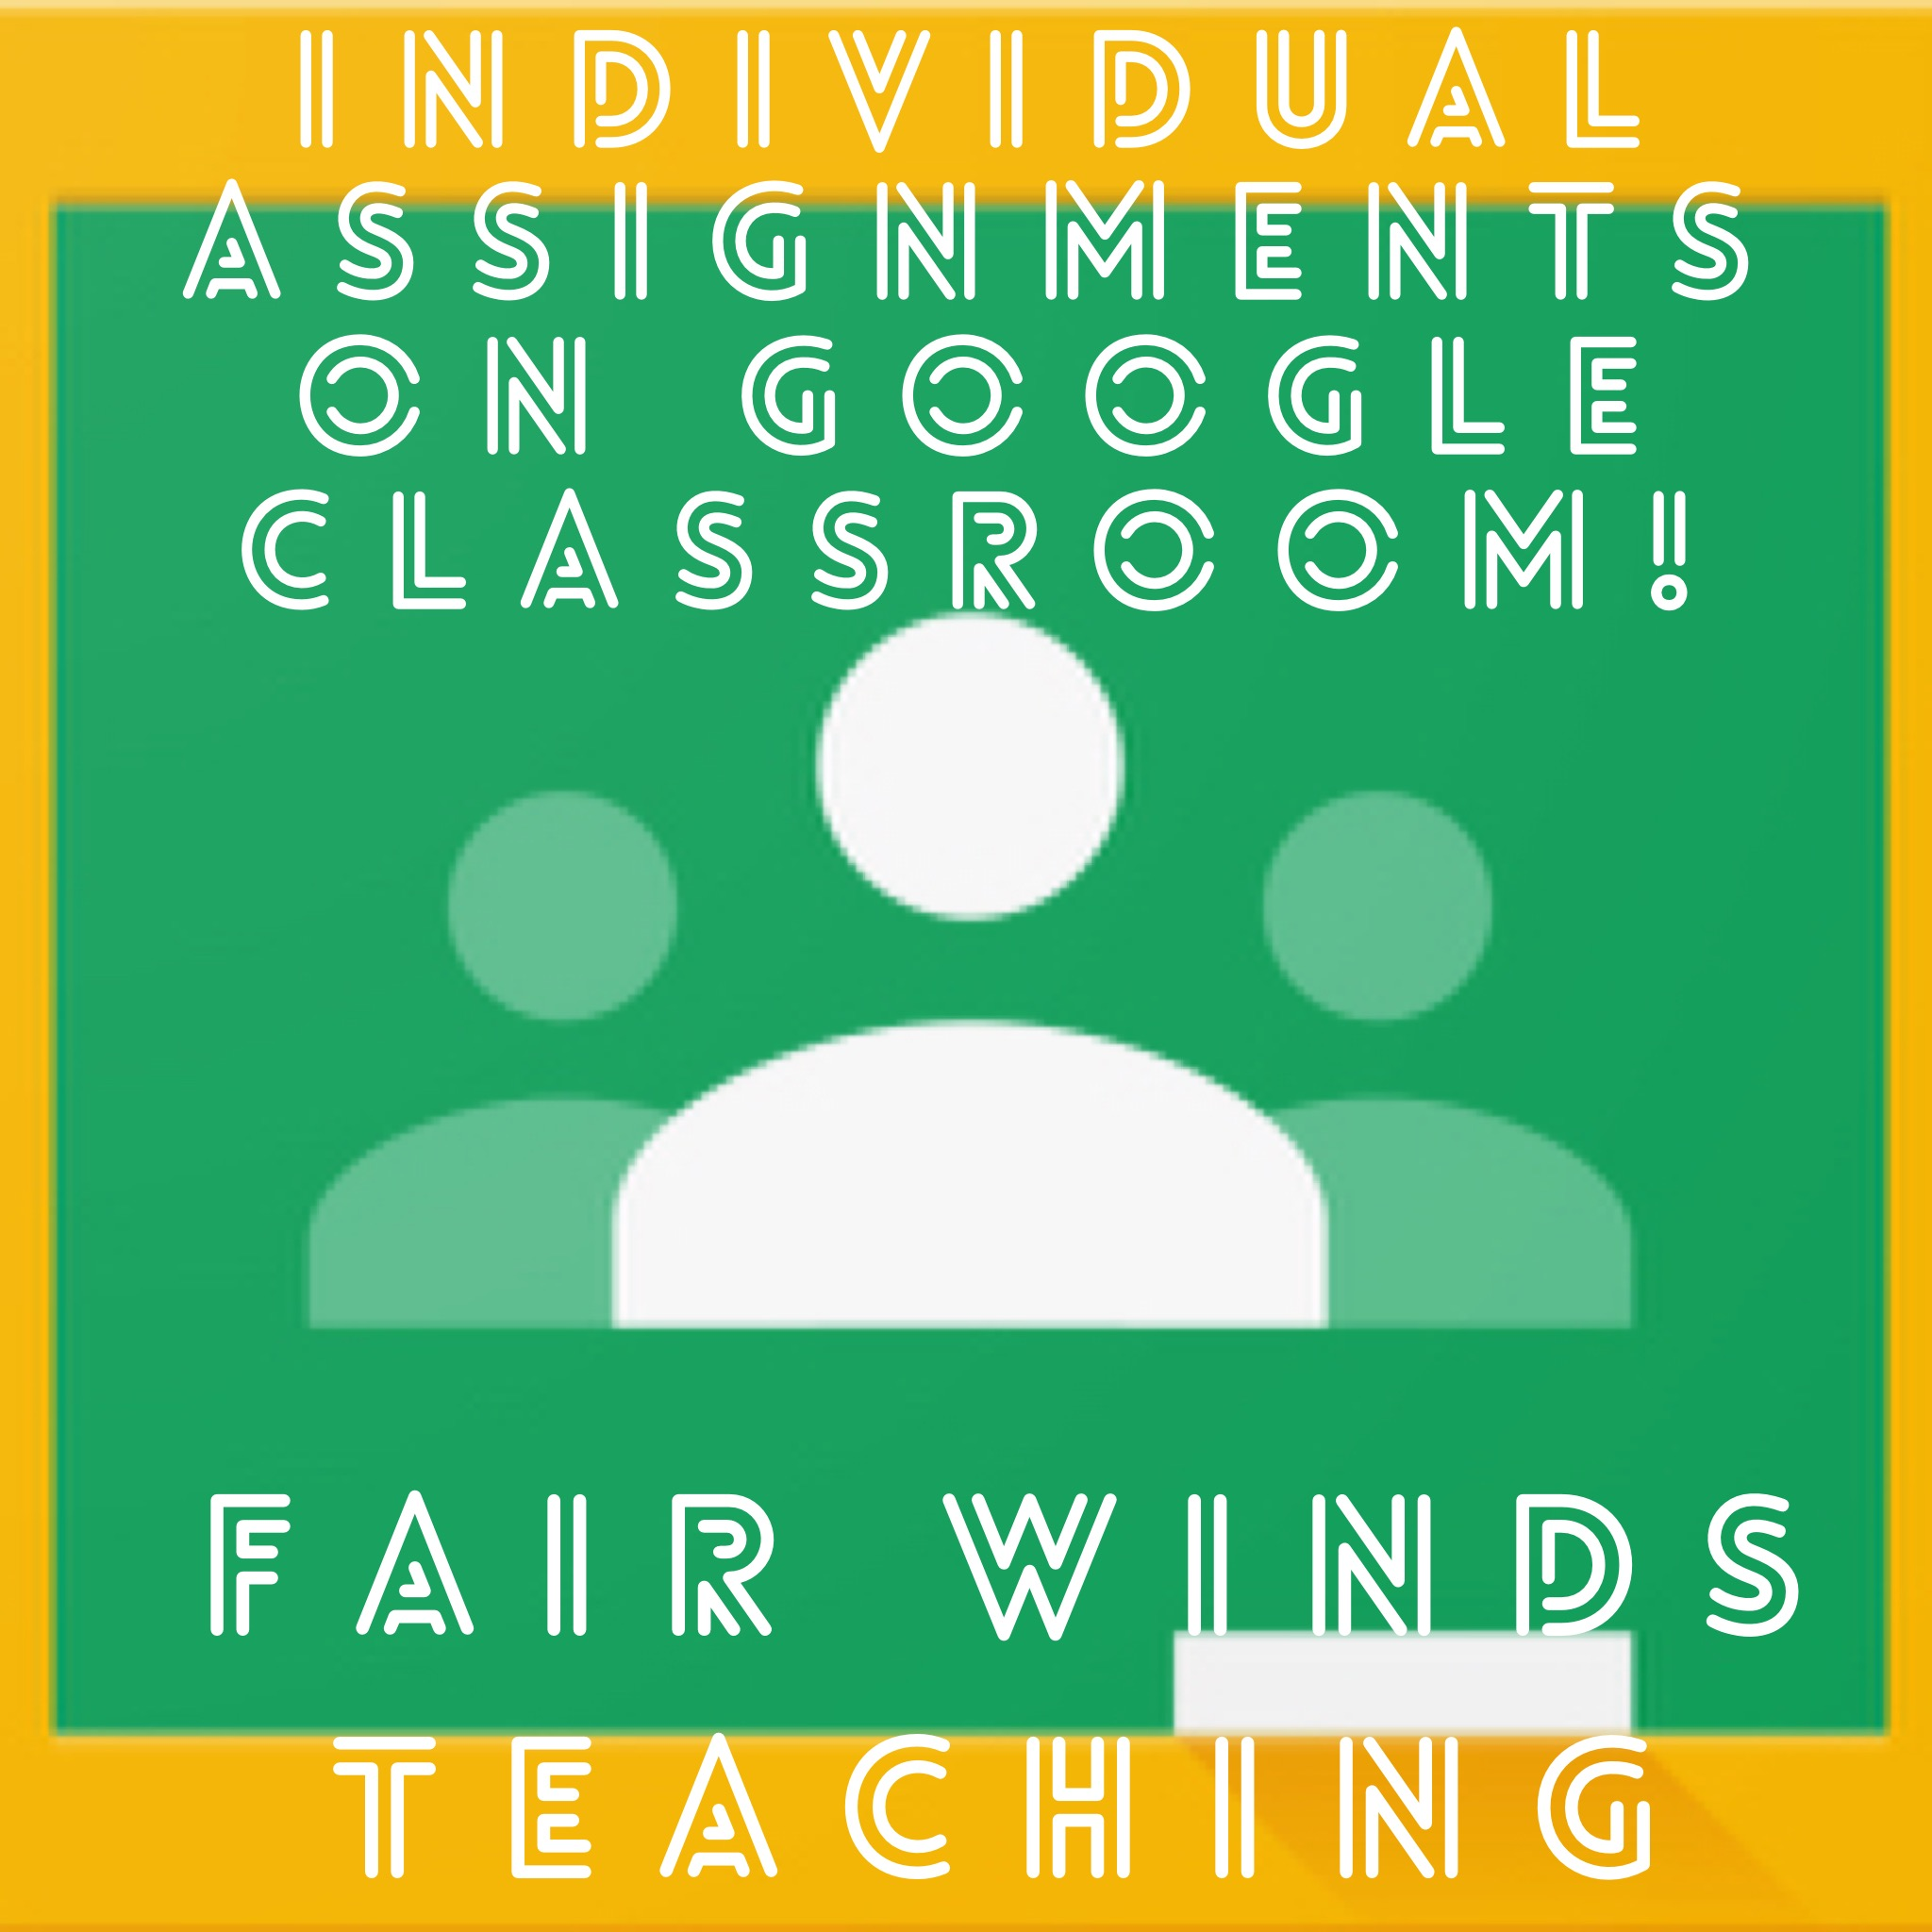 Individual assignments on Google Classroom!!!